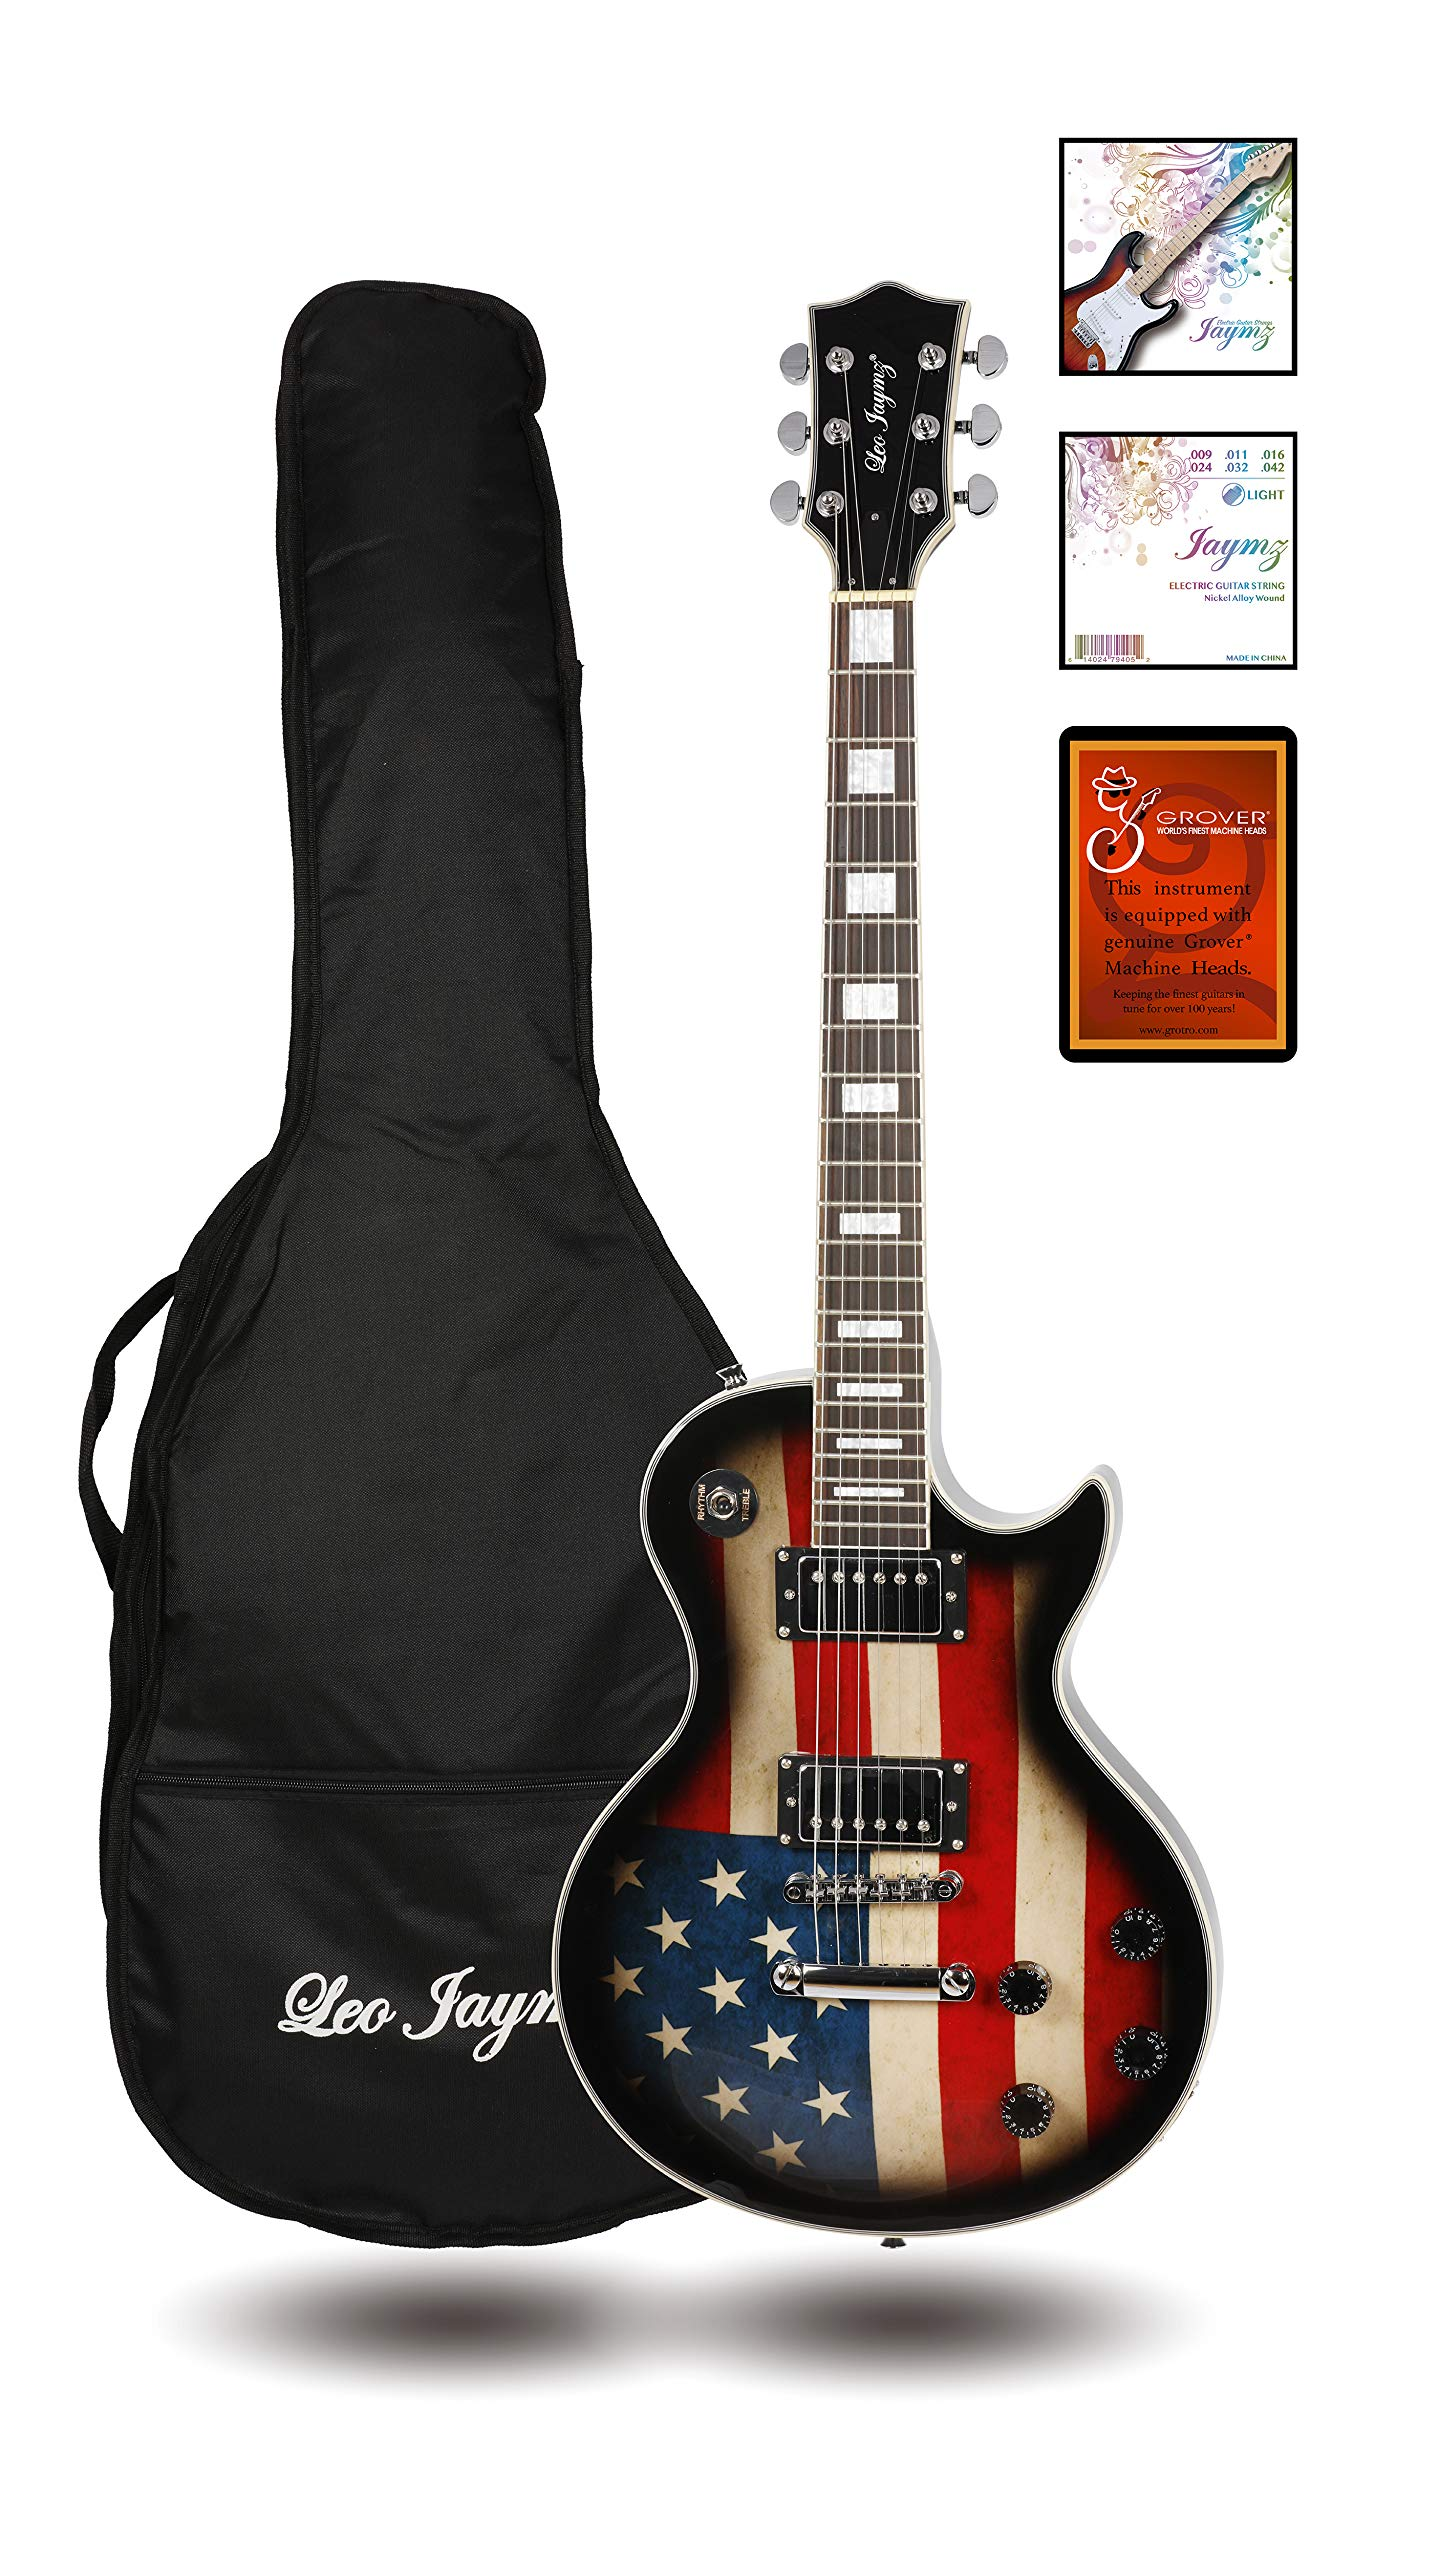 Single Cut Curved Top Electric Guitar for Beginner - with Special US Flag Sticker on Top - Grover Machine Heads Installed - Super Light String in 0.9 and Extra Set as Spare Parts by Leo Jaymz